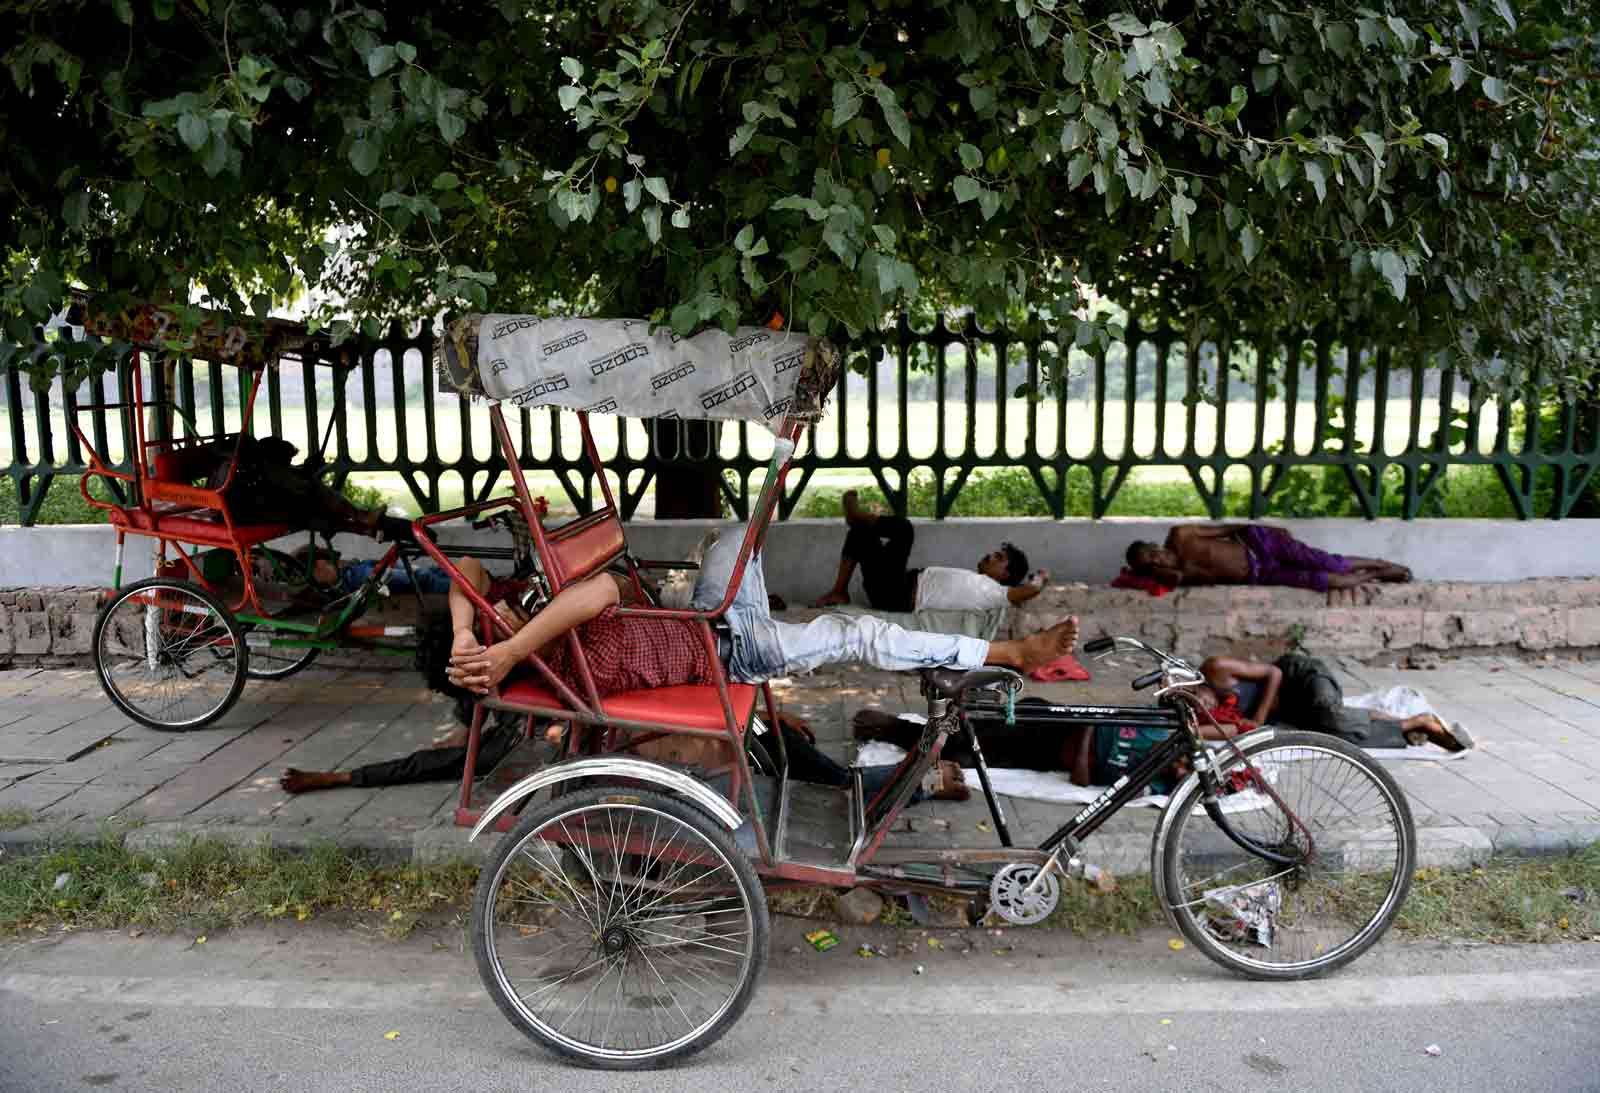 Men napping under a tree during a hot summer day in New Delhi, July 2, 2019